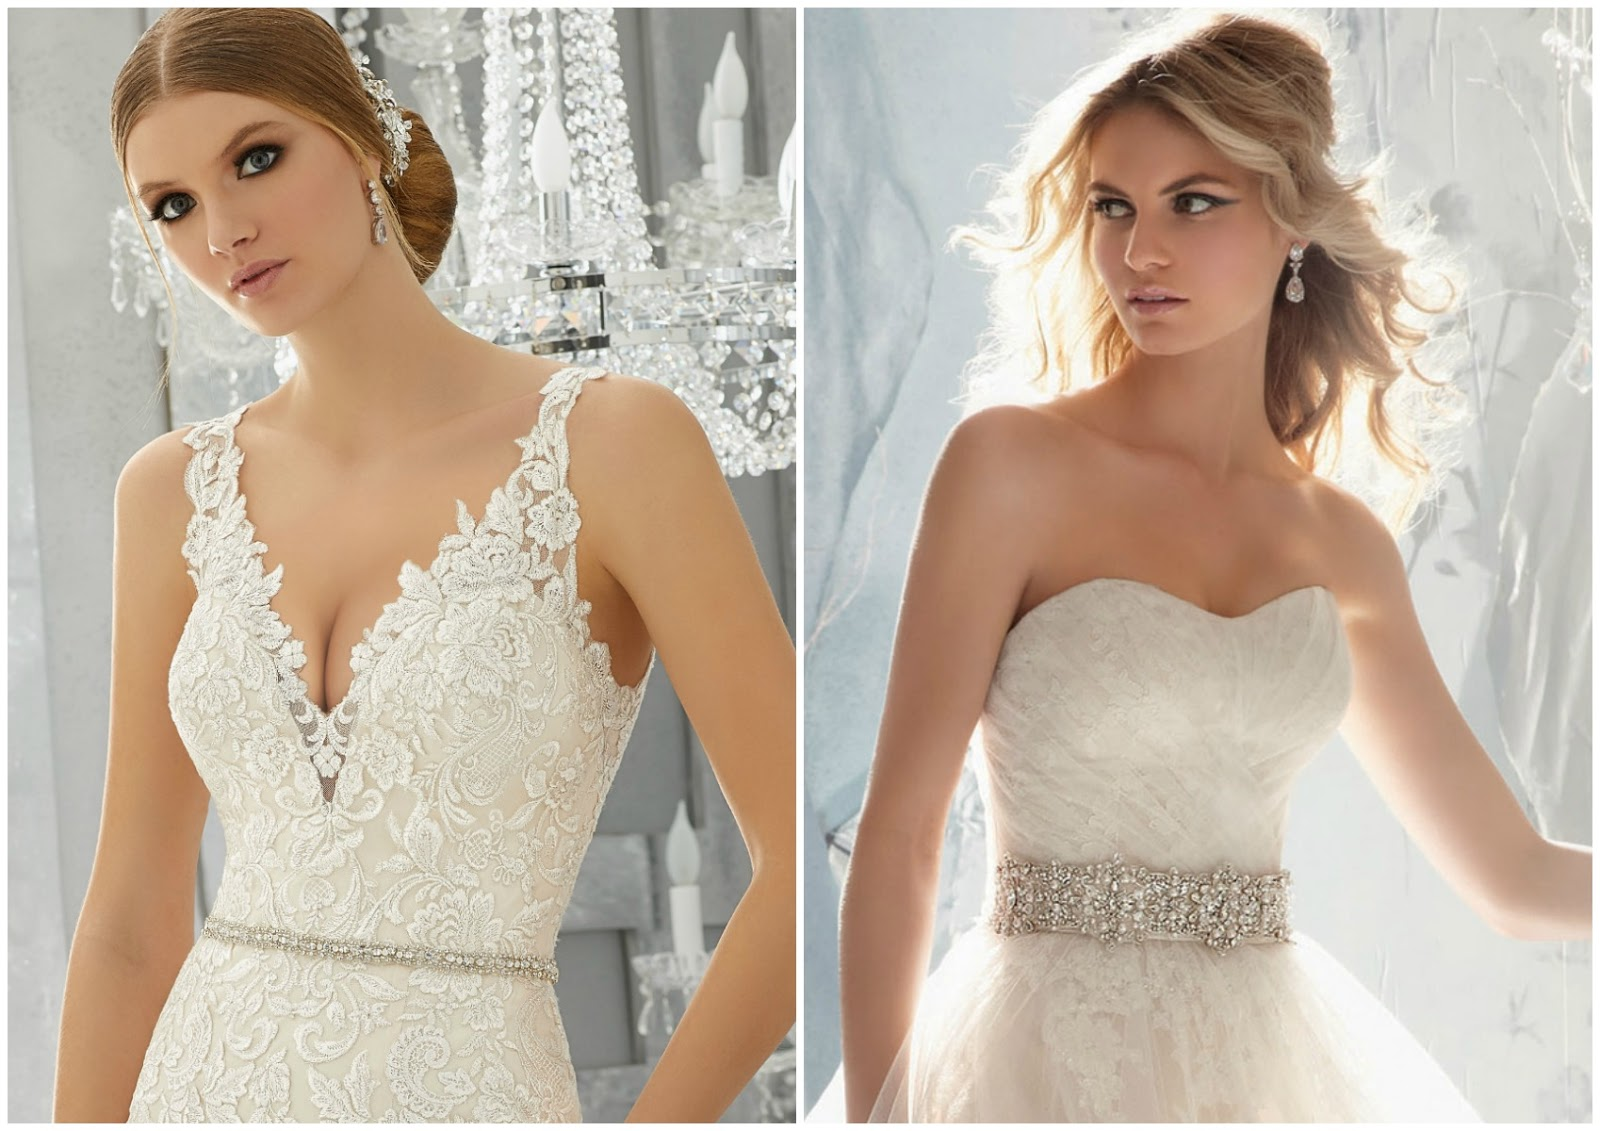 Brides of America Online Store: Gorgeous Bridal Gown Accessories ...